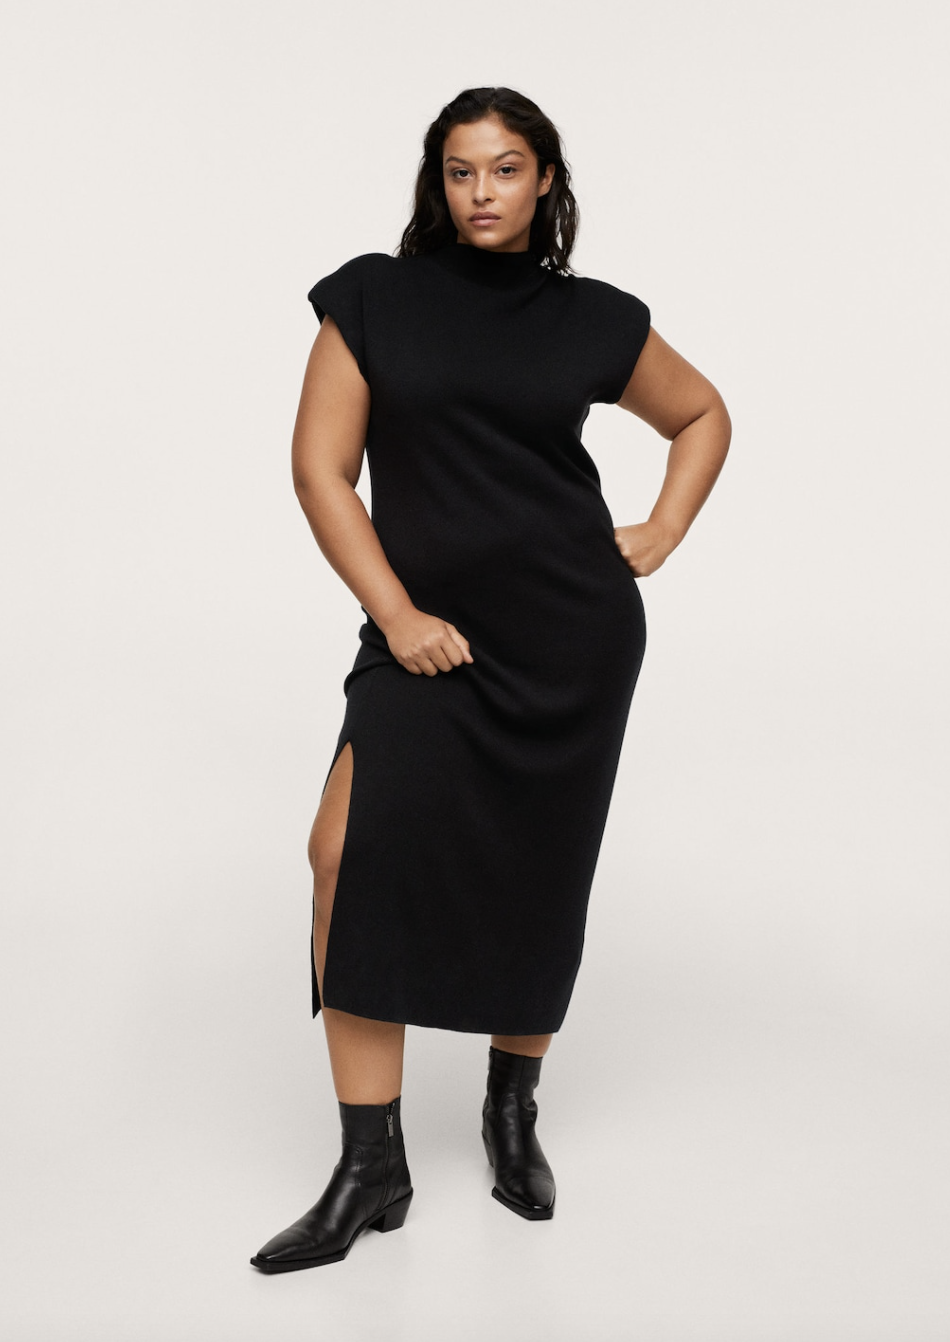 plus size model with black hair posing in black midi dress and black booties